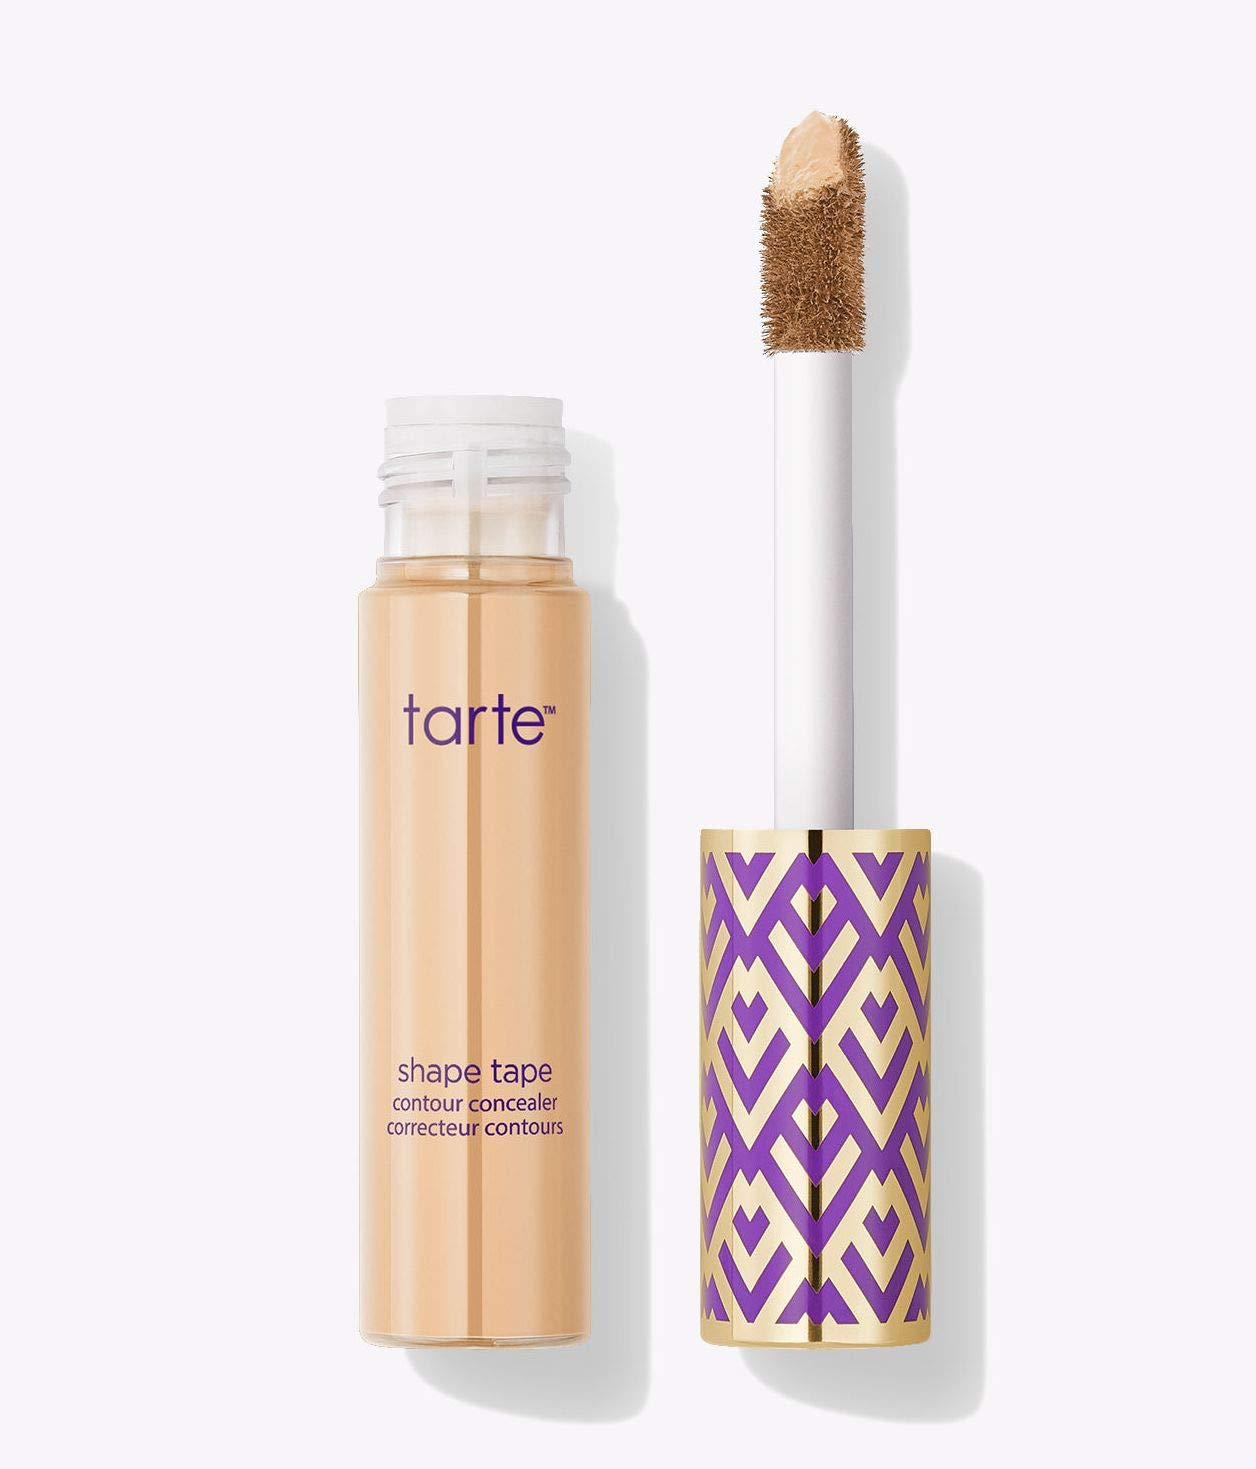 Tarte Shape Tape Contour ConcealerFull Size -Fair Light Neutral